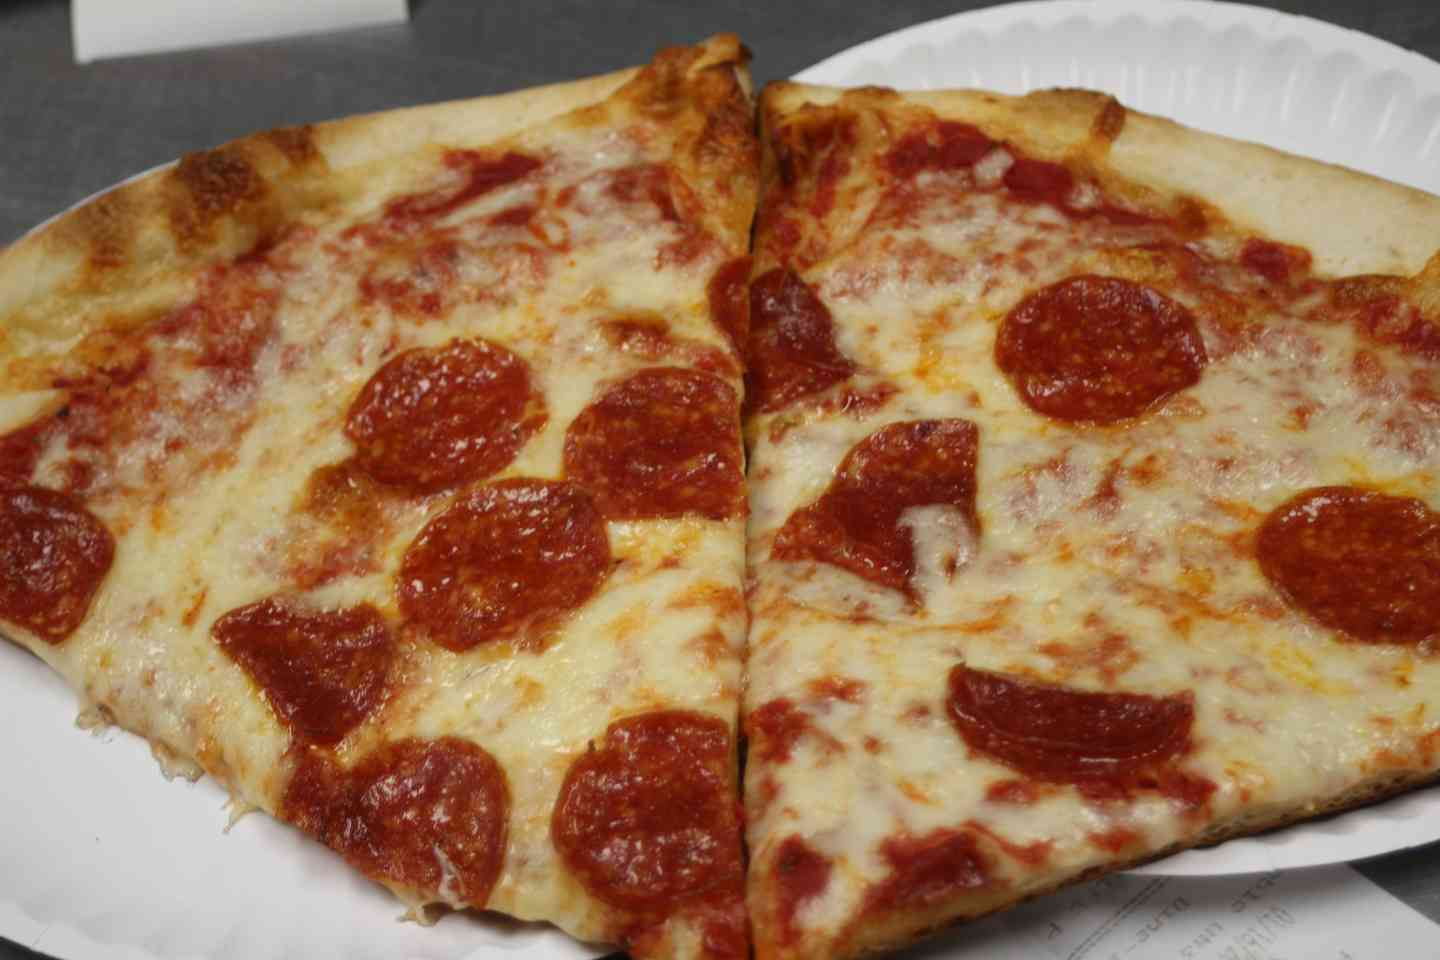 TWO SLICES